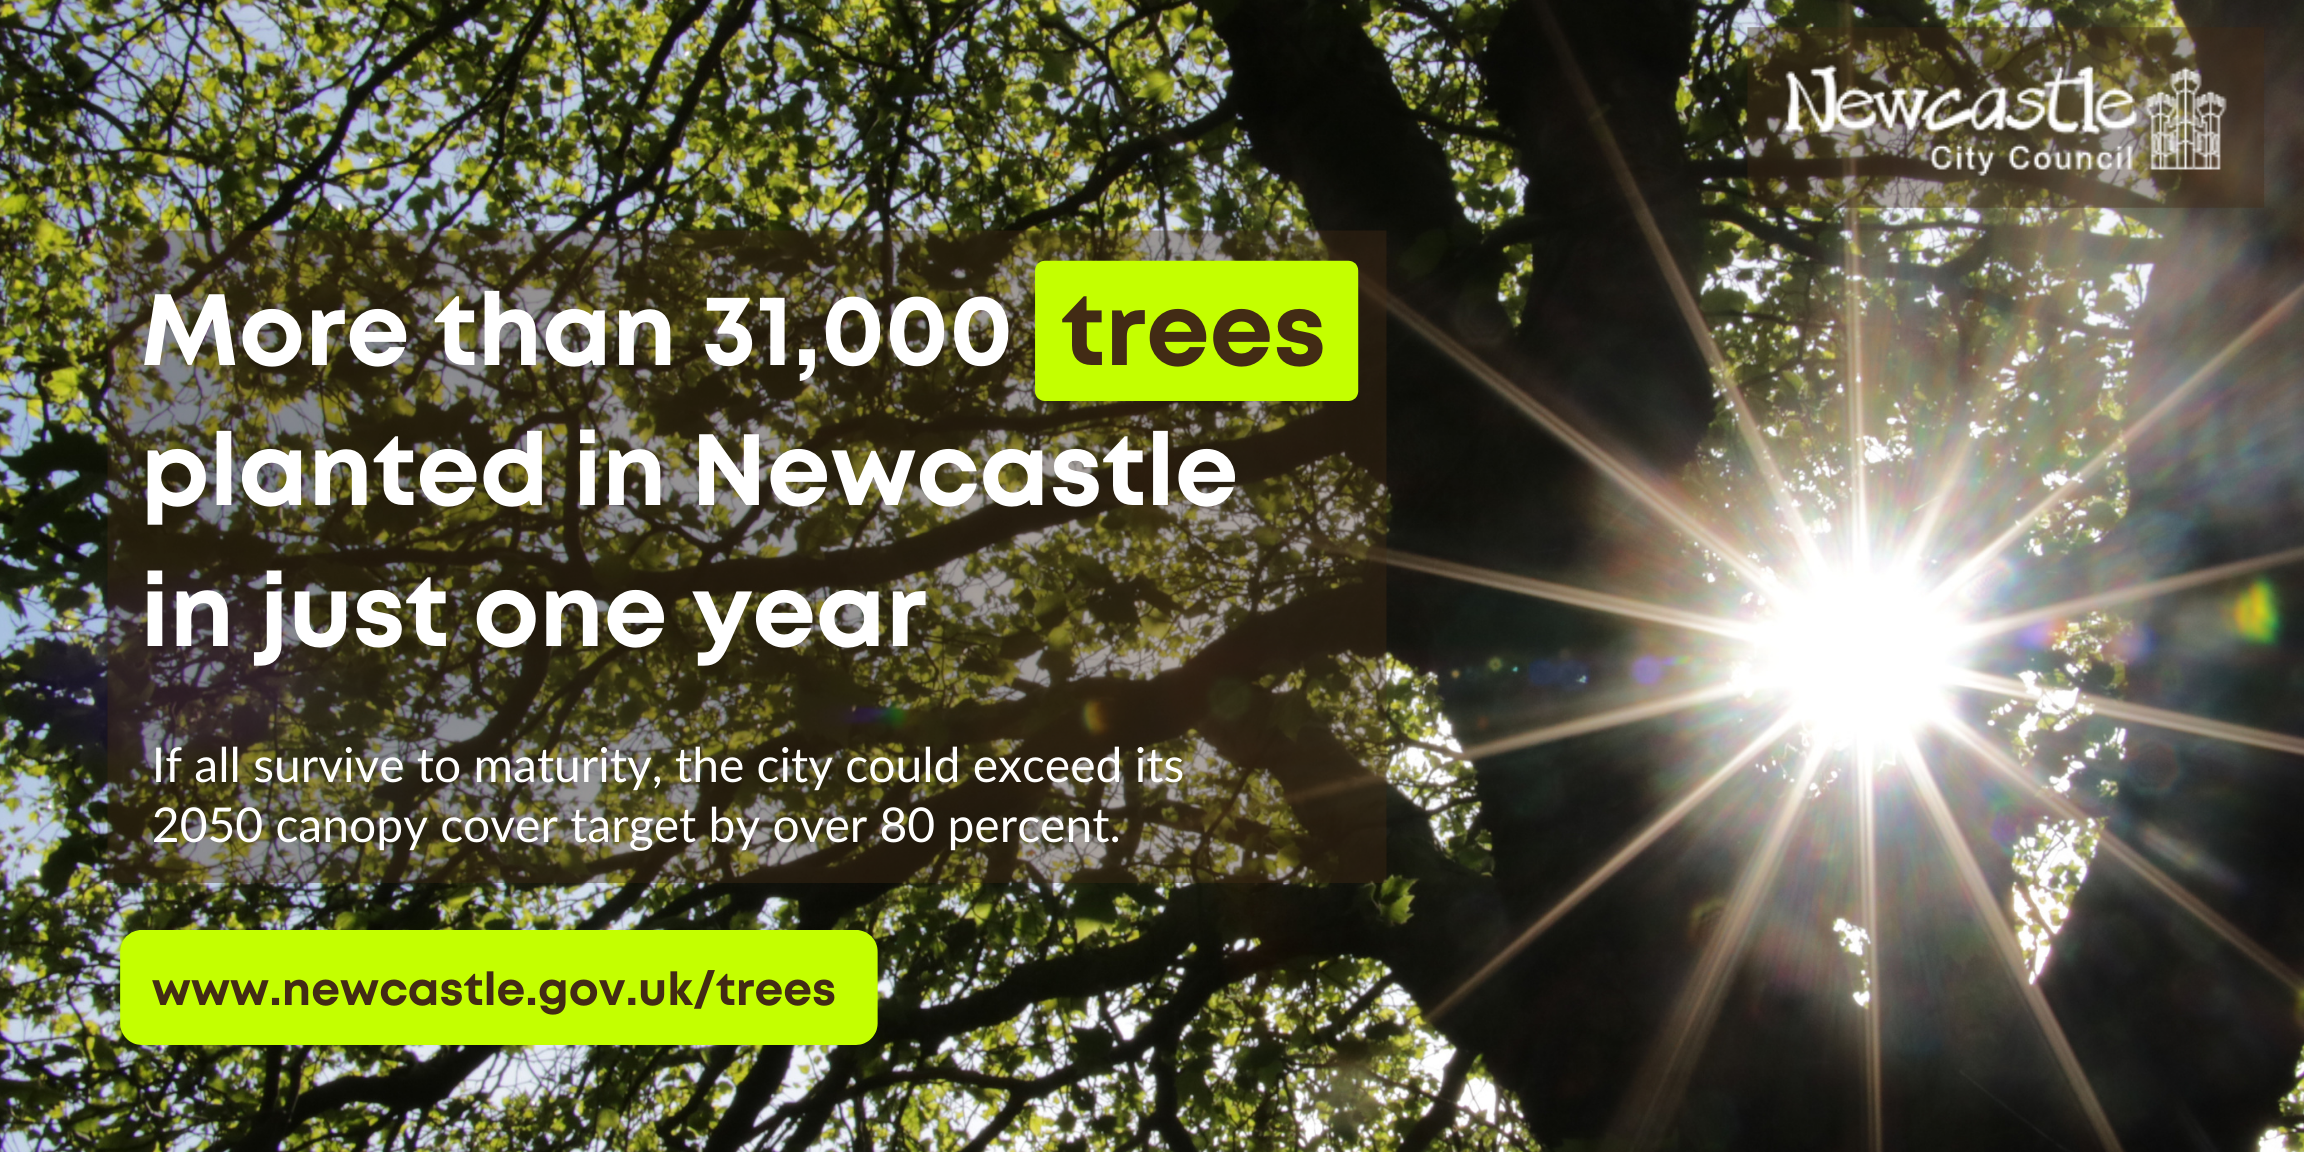 Sun shining through trees in Newcastle. Text: More than 31,000 trees planted in Newcastle in just one year.